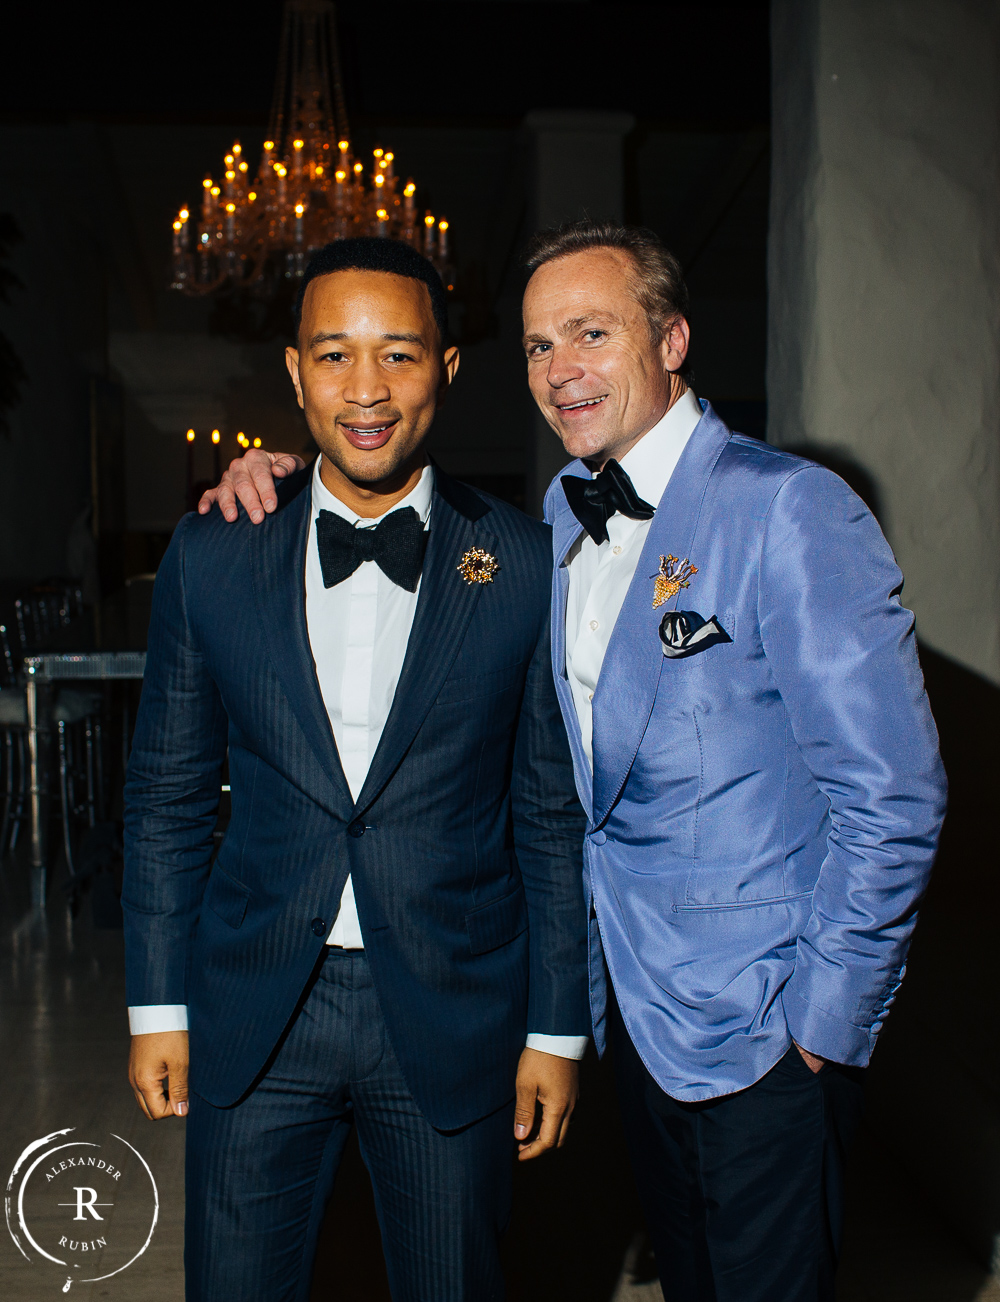 JC Boisset John Legend Napa Celebrity Photographer Alexander Rubin